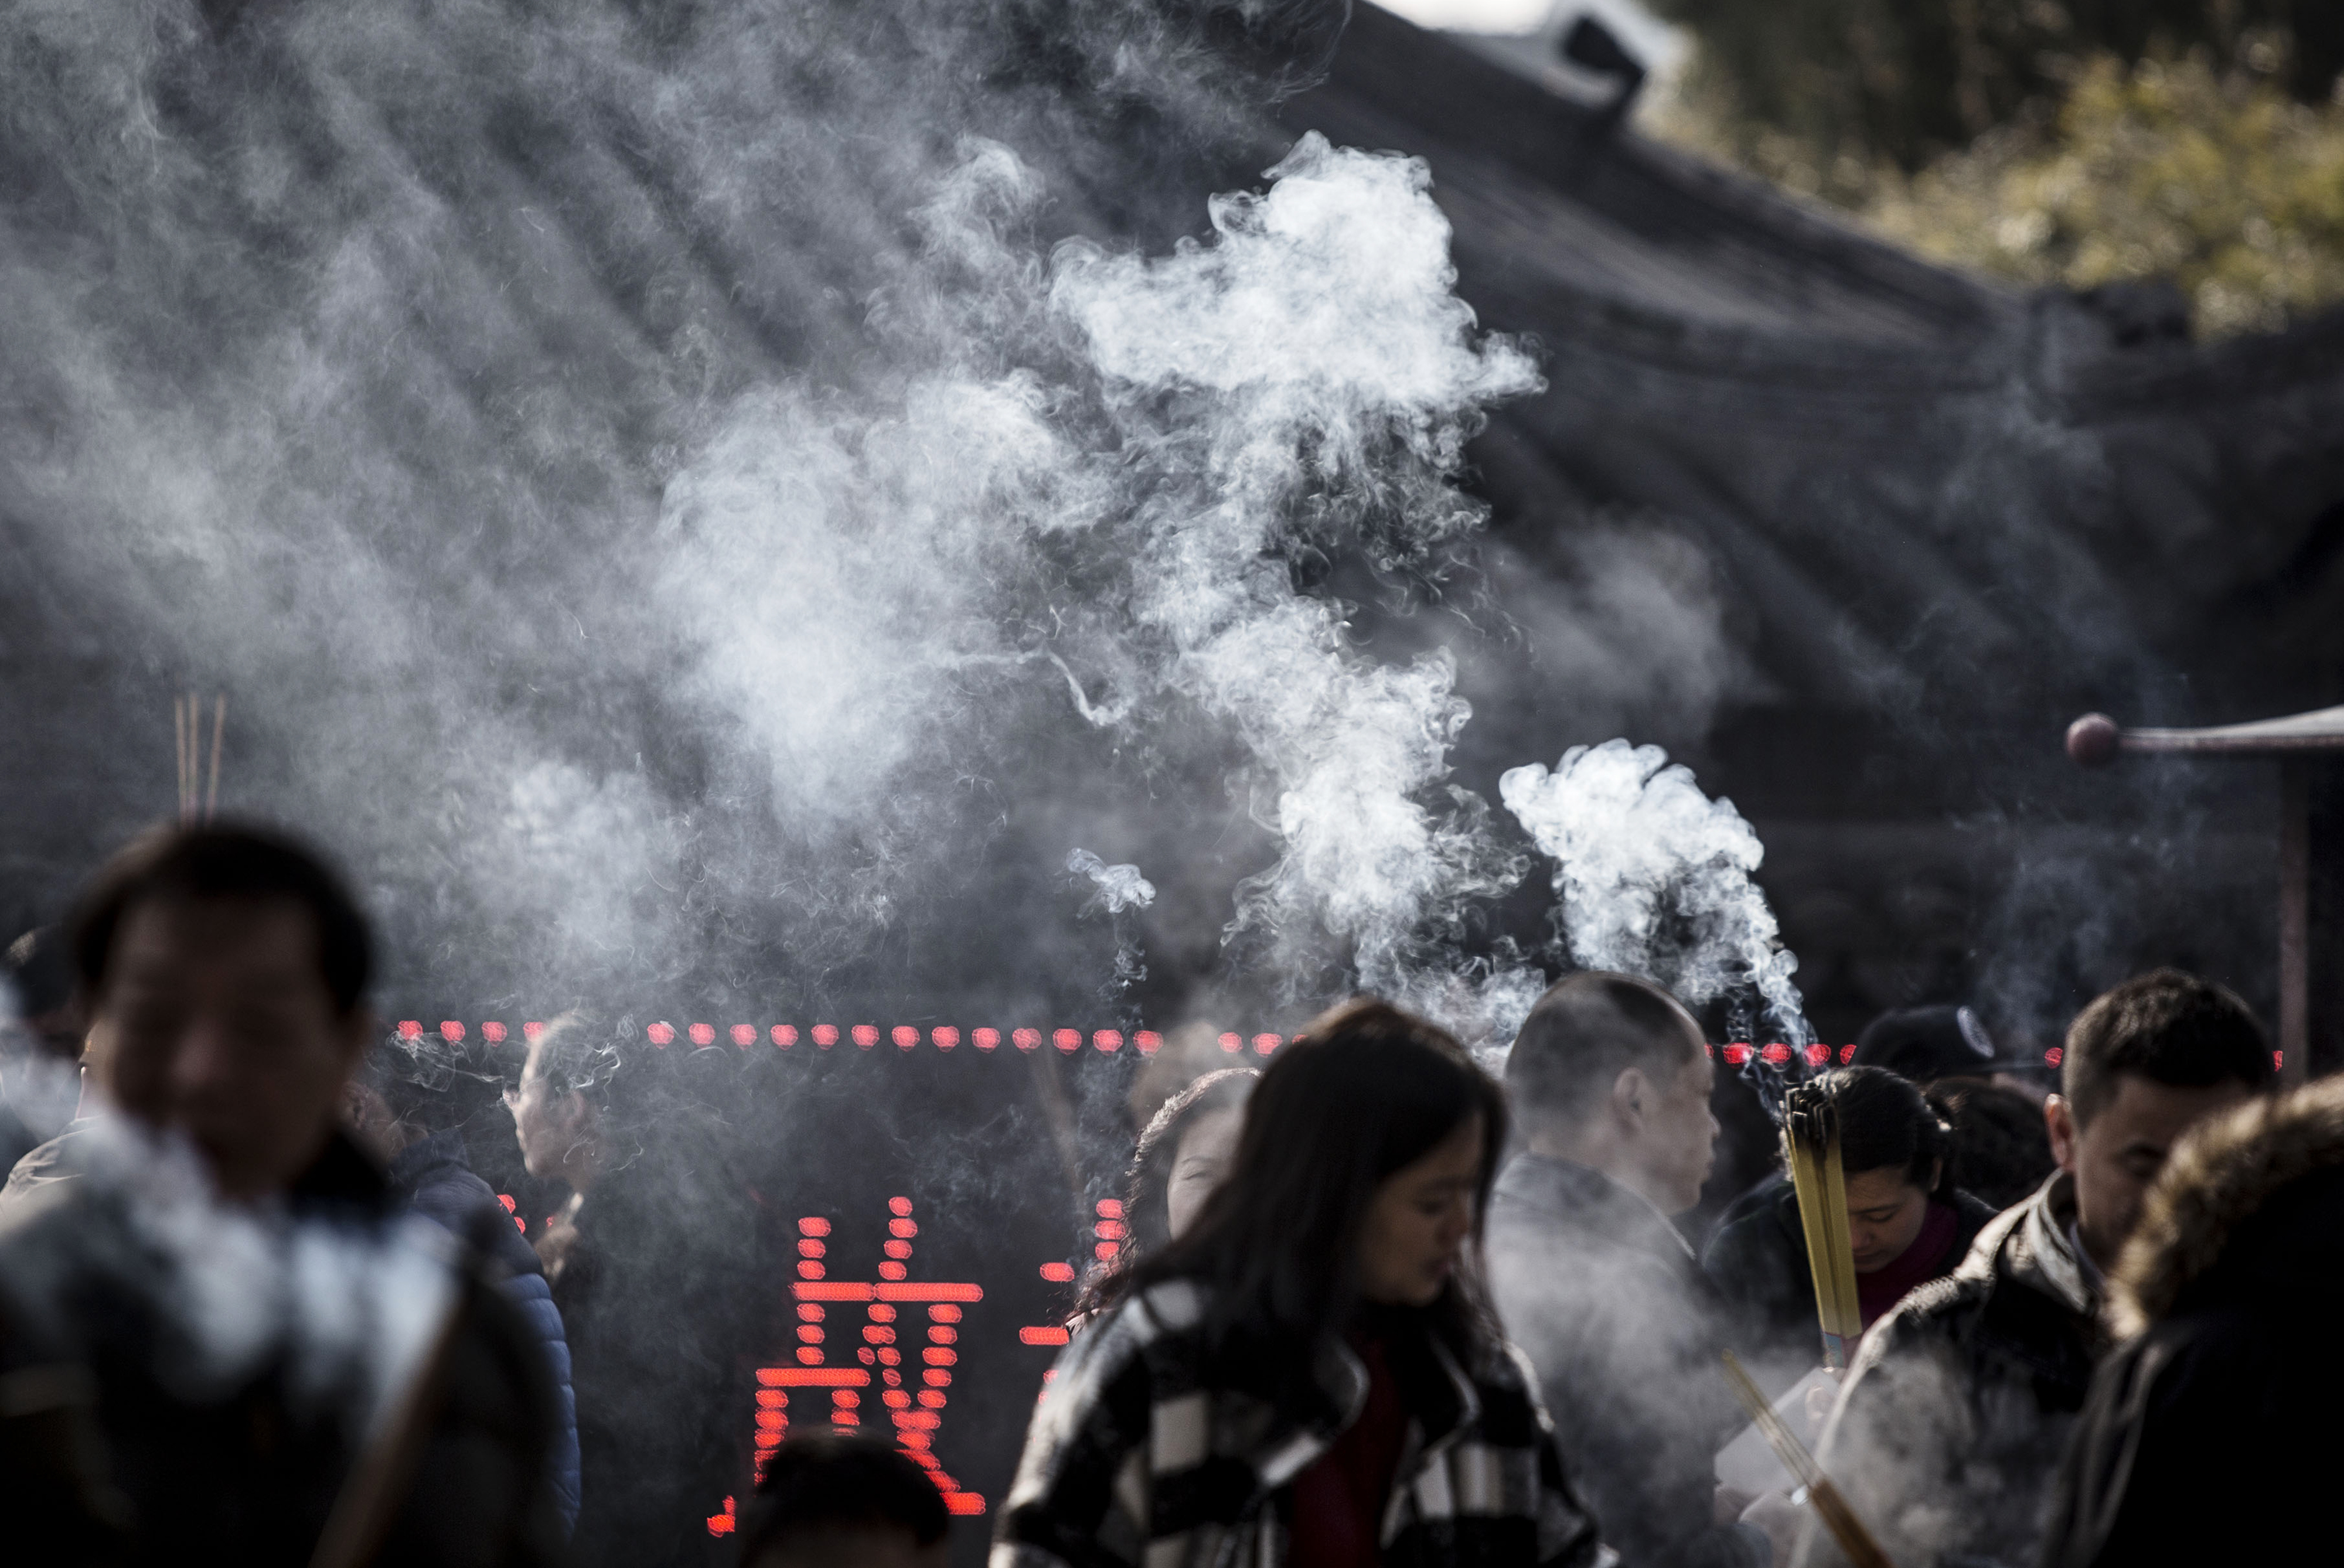 Worshipers pray and make offerings of incense sticks at Longhua Temple in Shanghai, China, on Tuesday, Feb. 9, 2016.